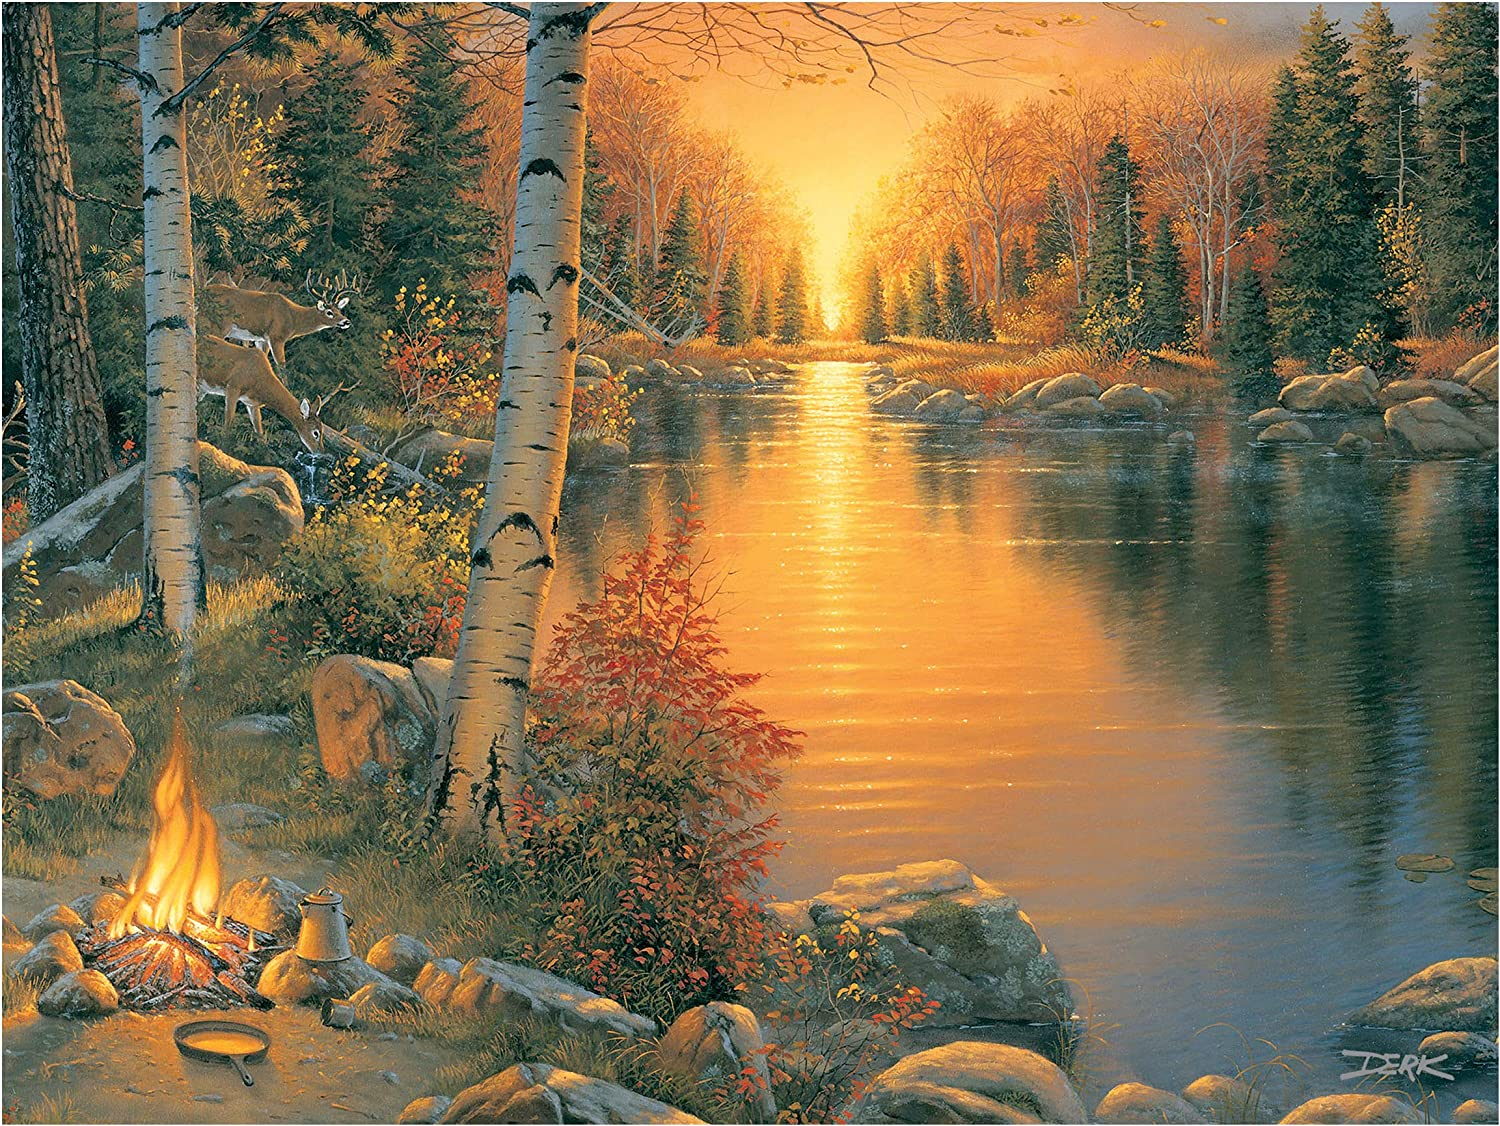 River's Edge Products LED Art 16in x 12in - Campfire at Sunset